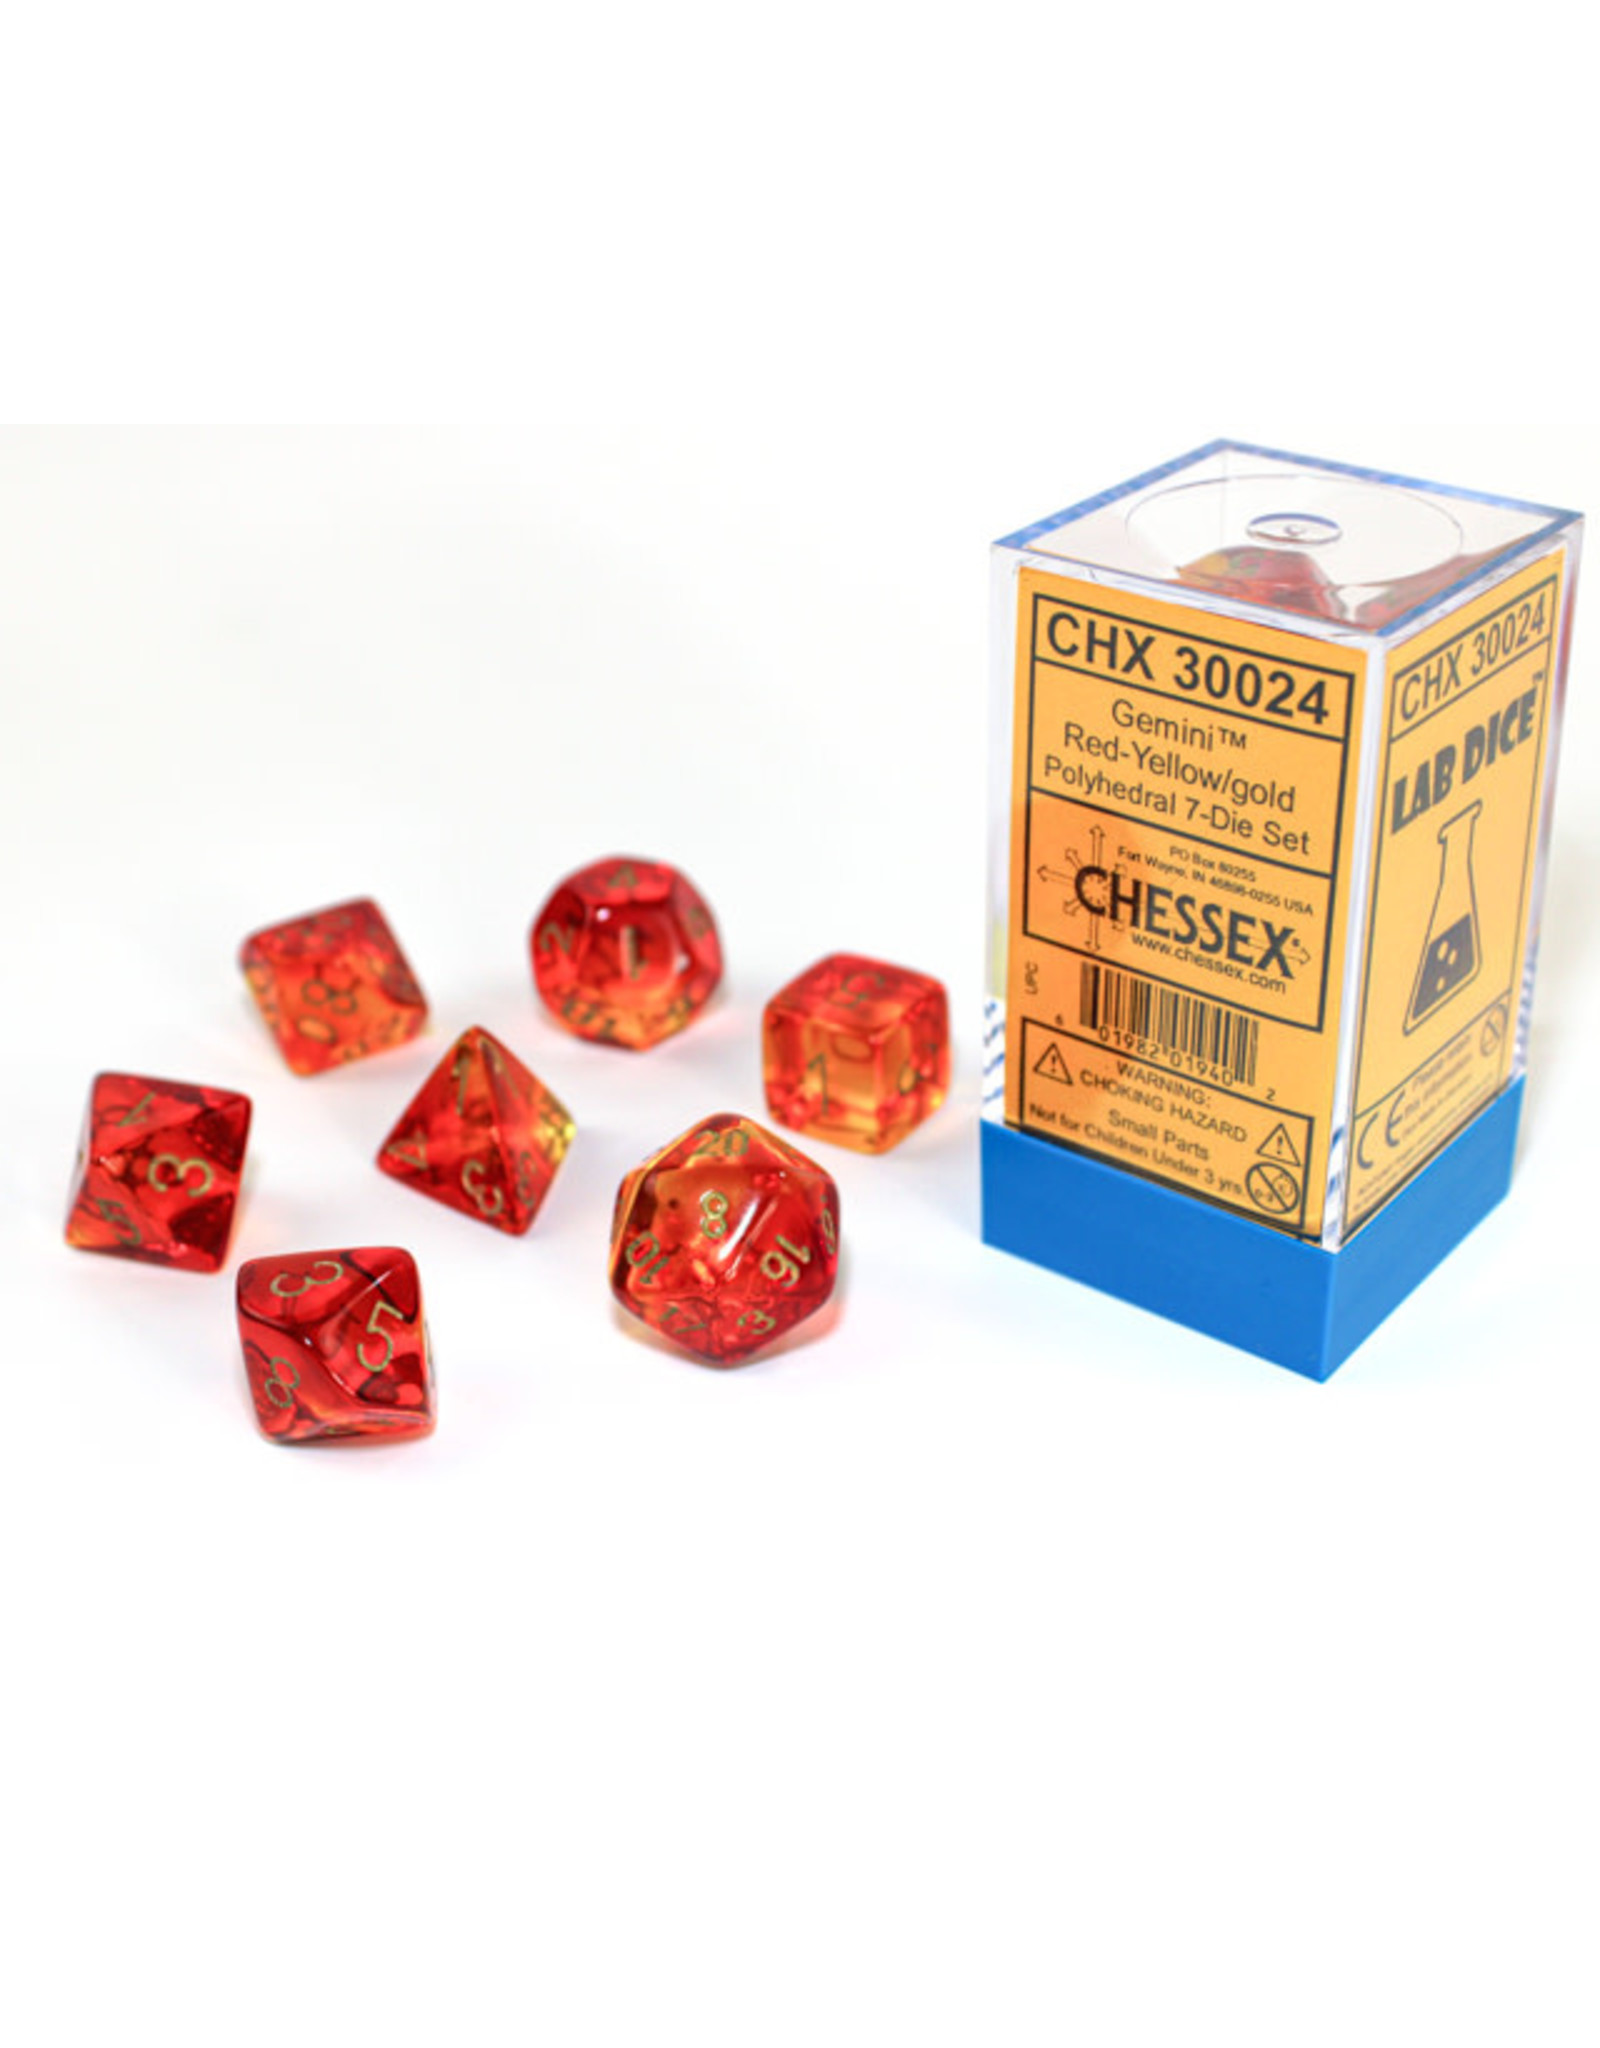 Chessex Chessex: 7-Die Set Gemini: Red-Yellow/Gold